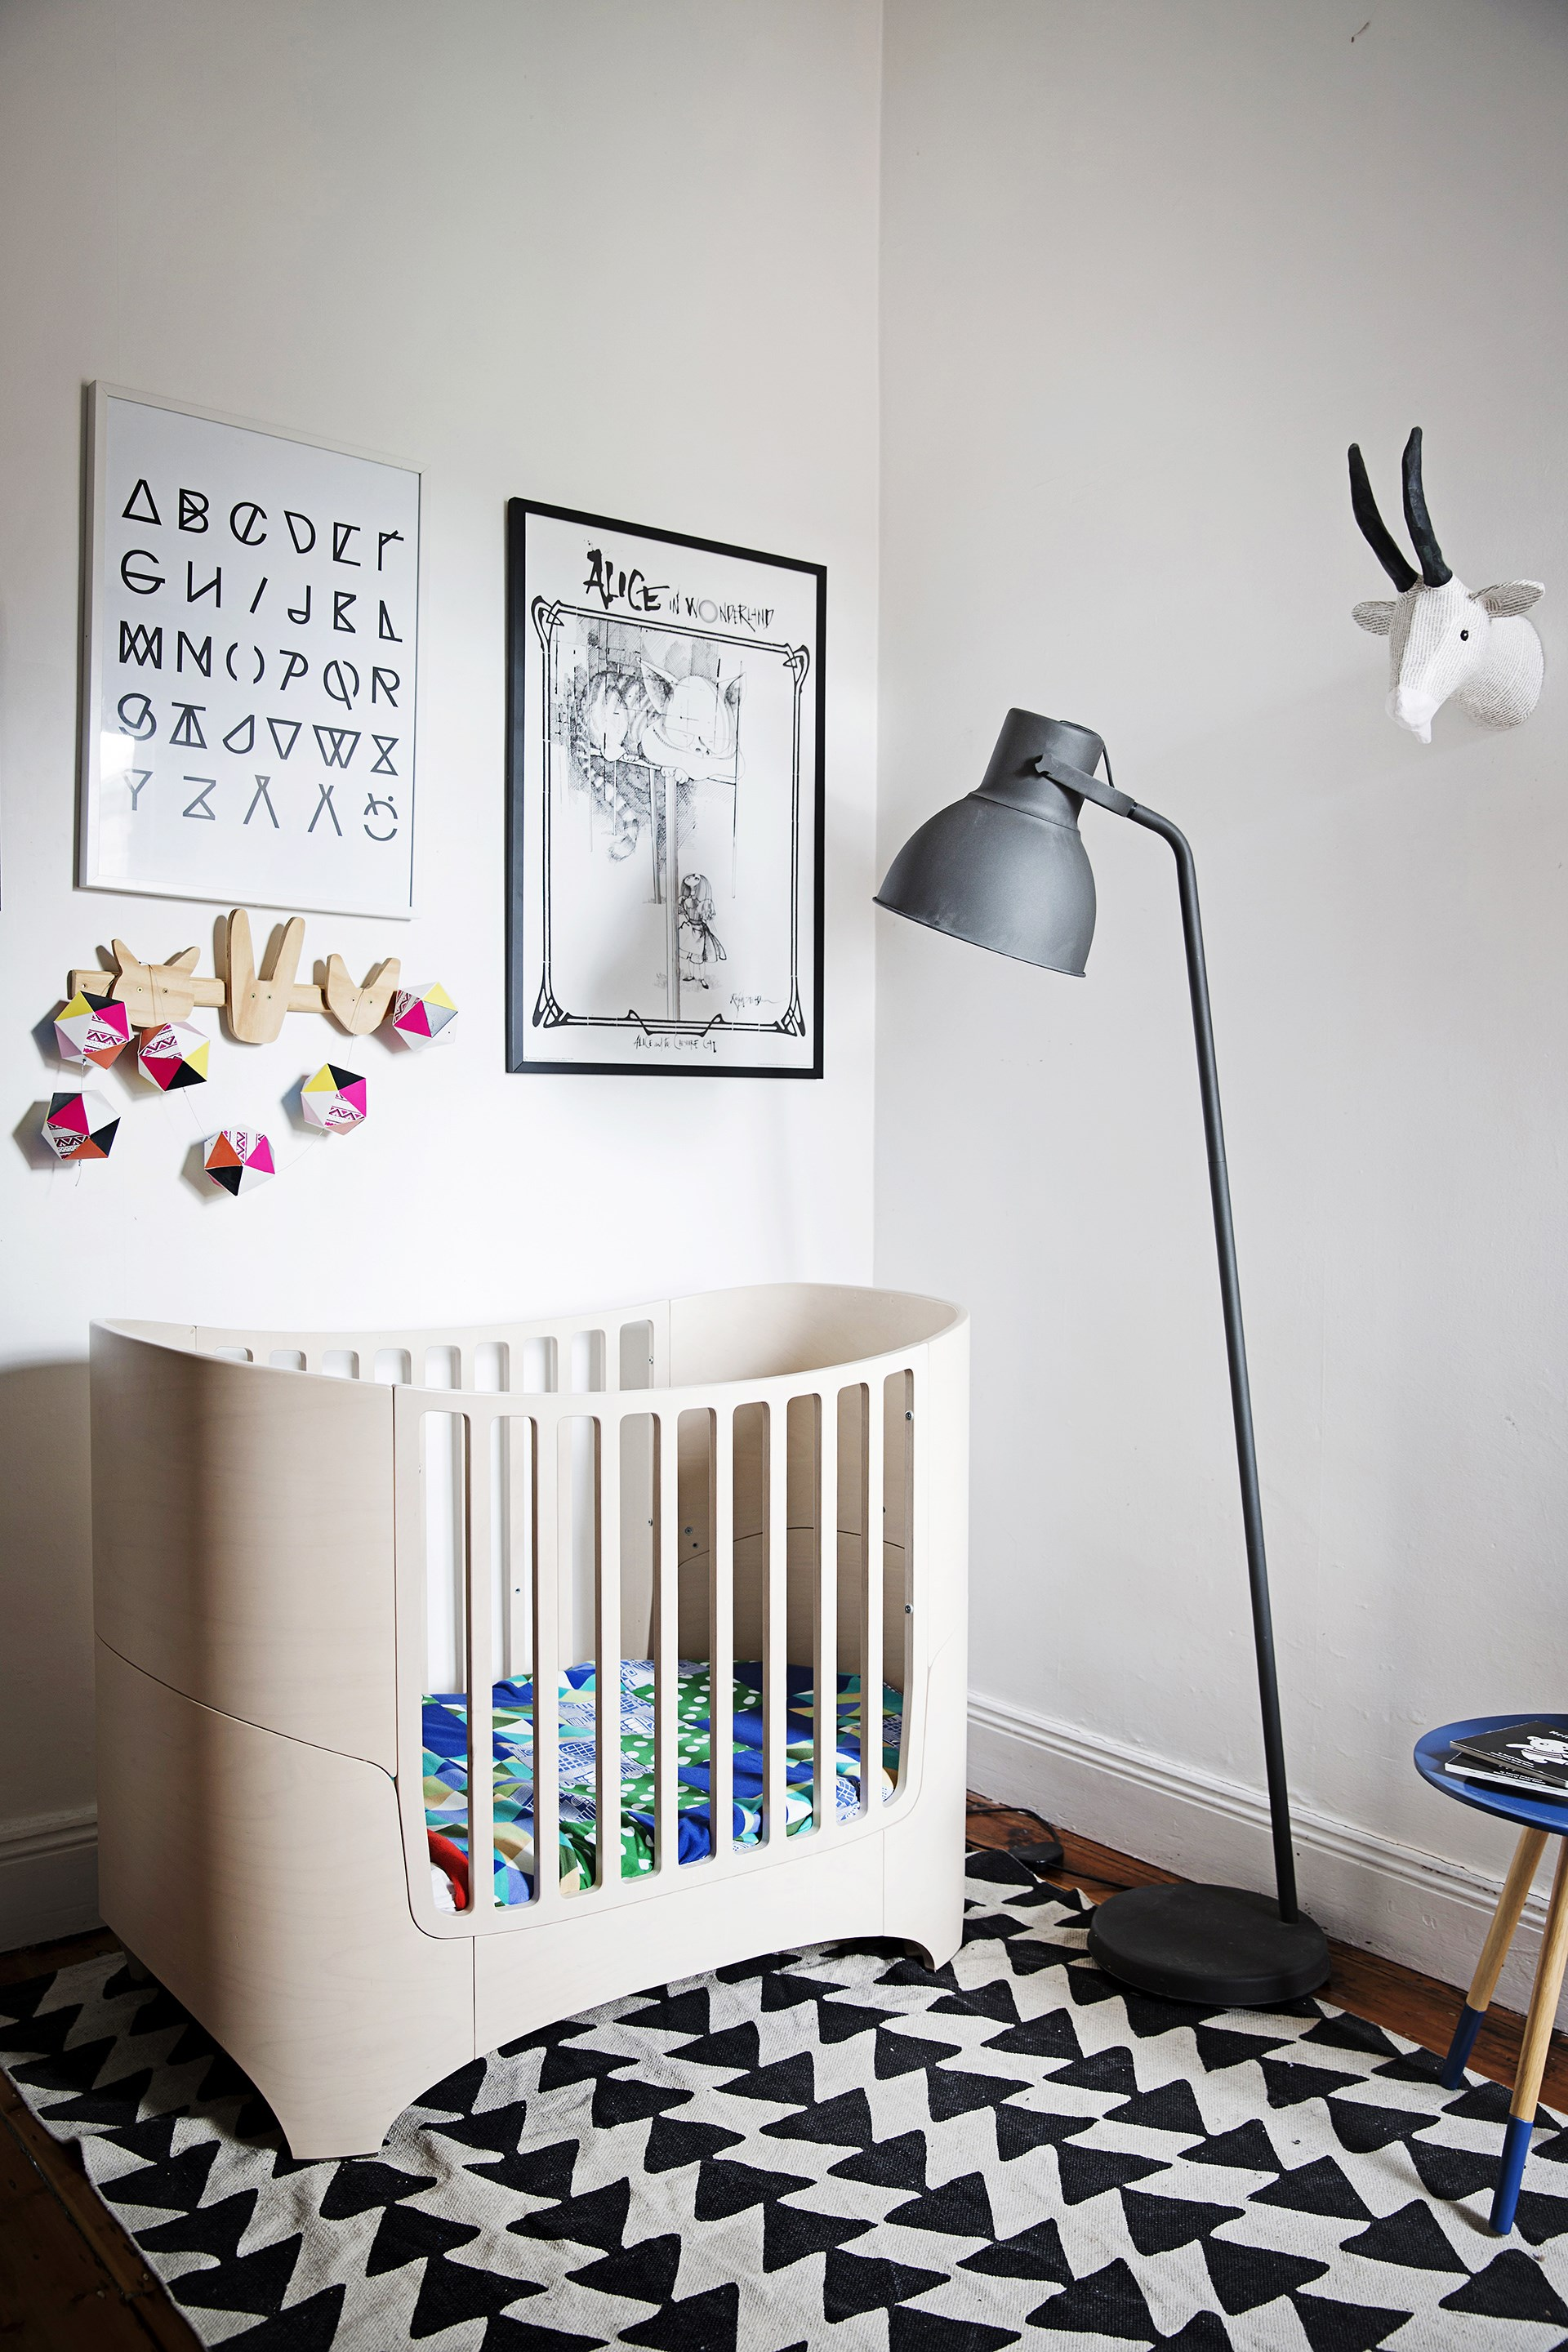 Eclectic artwork and a patterned rug at a touch of playfulness to this gender-neutral nursery. *Photo: James Henry*